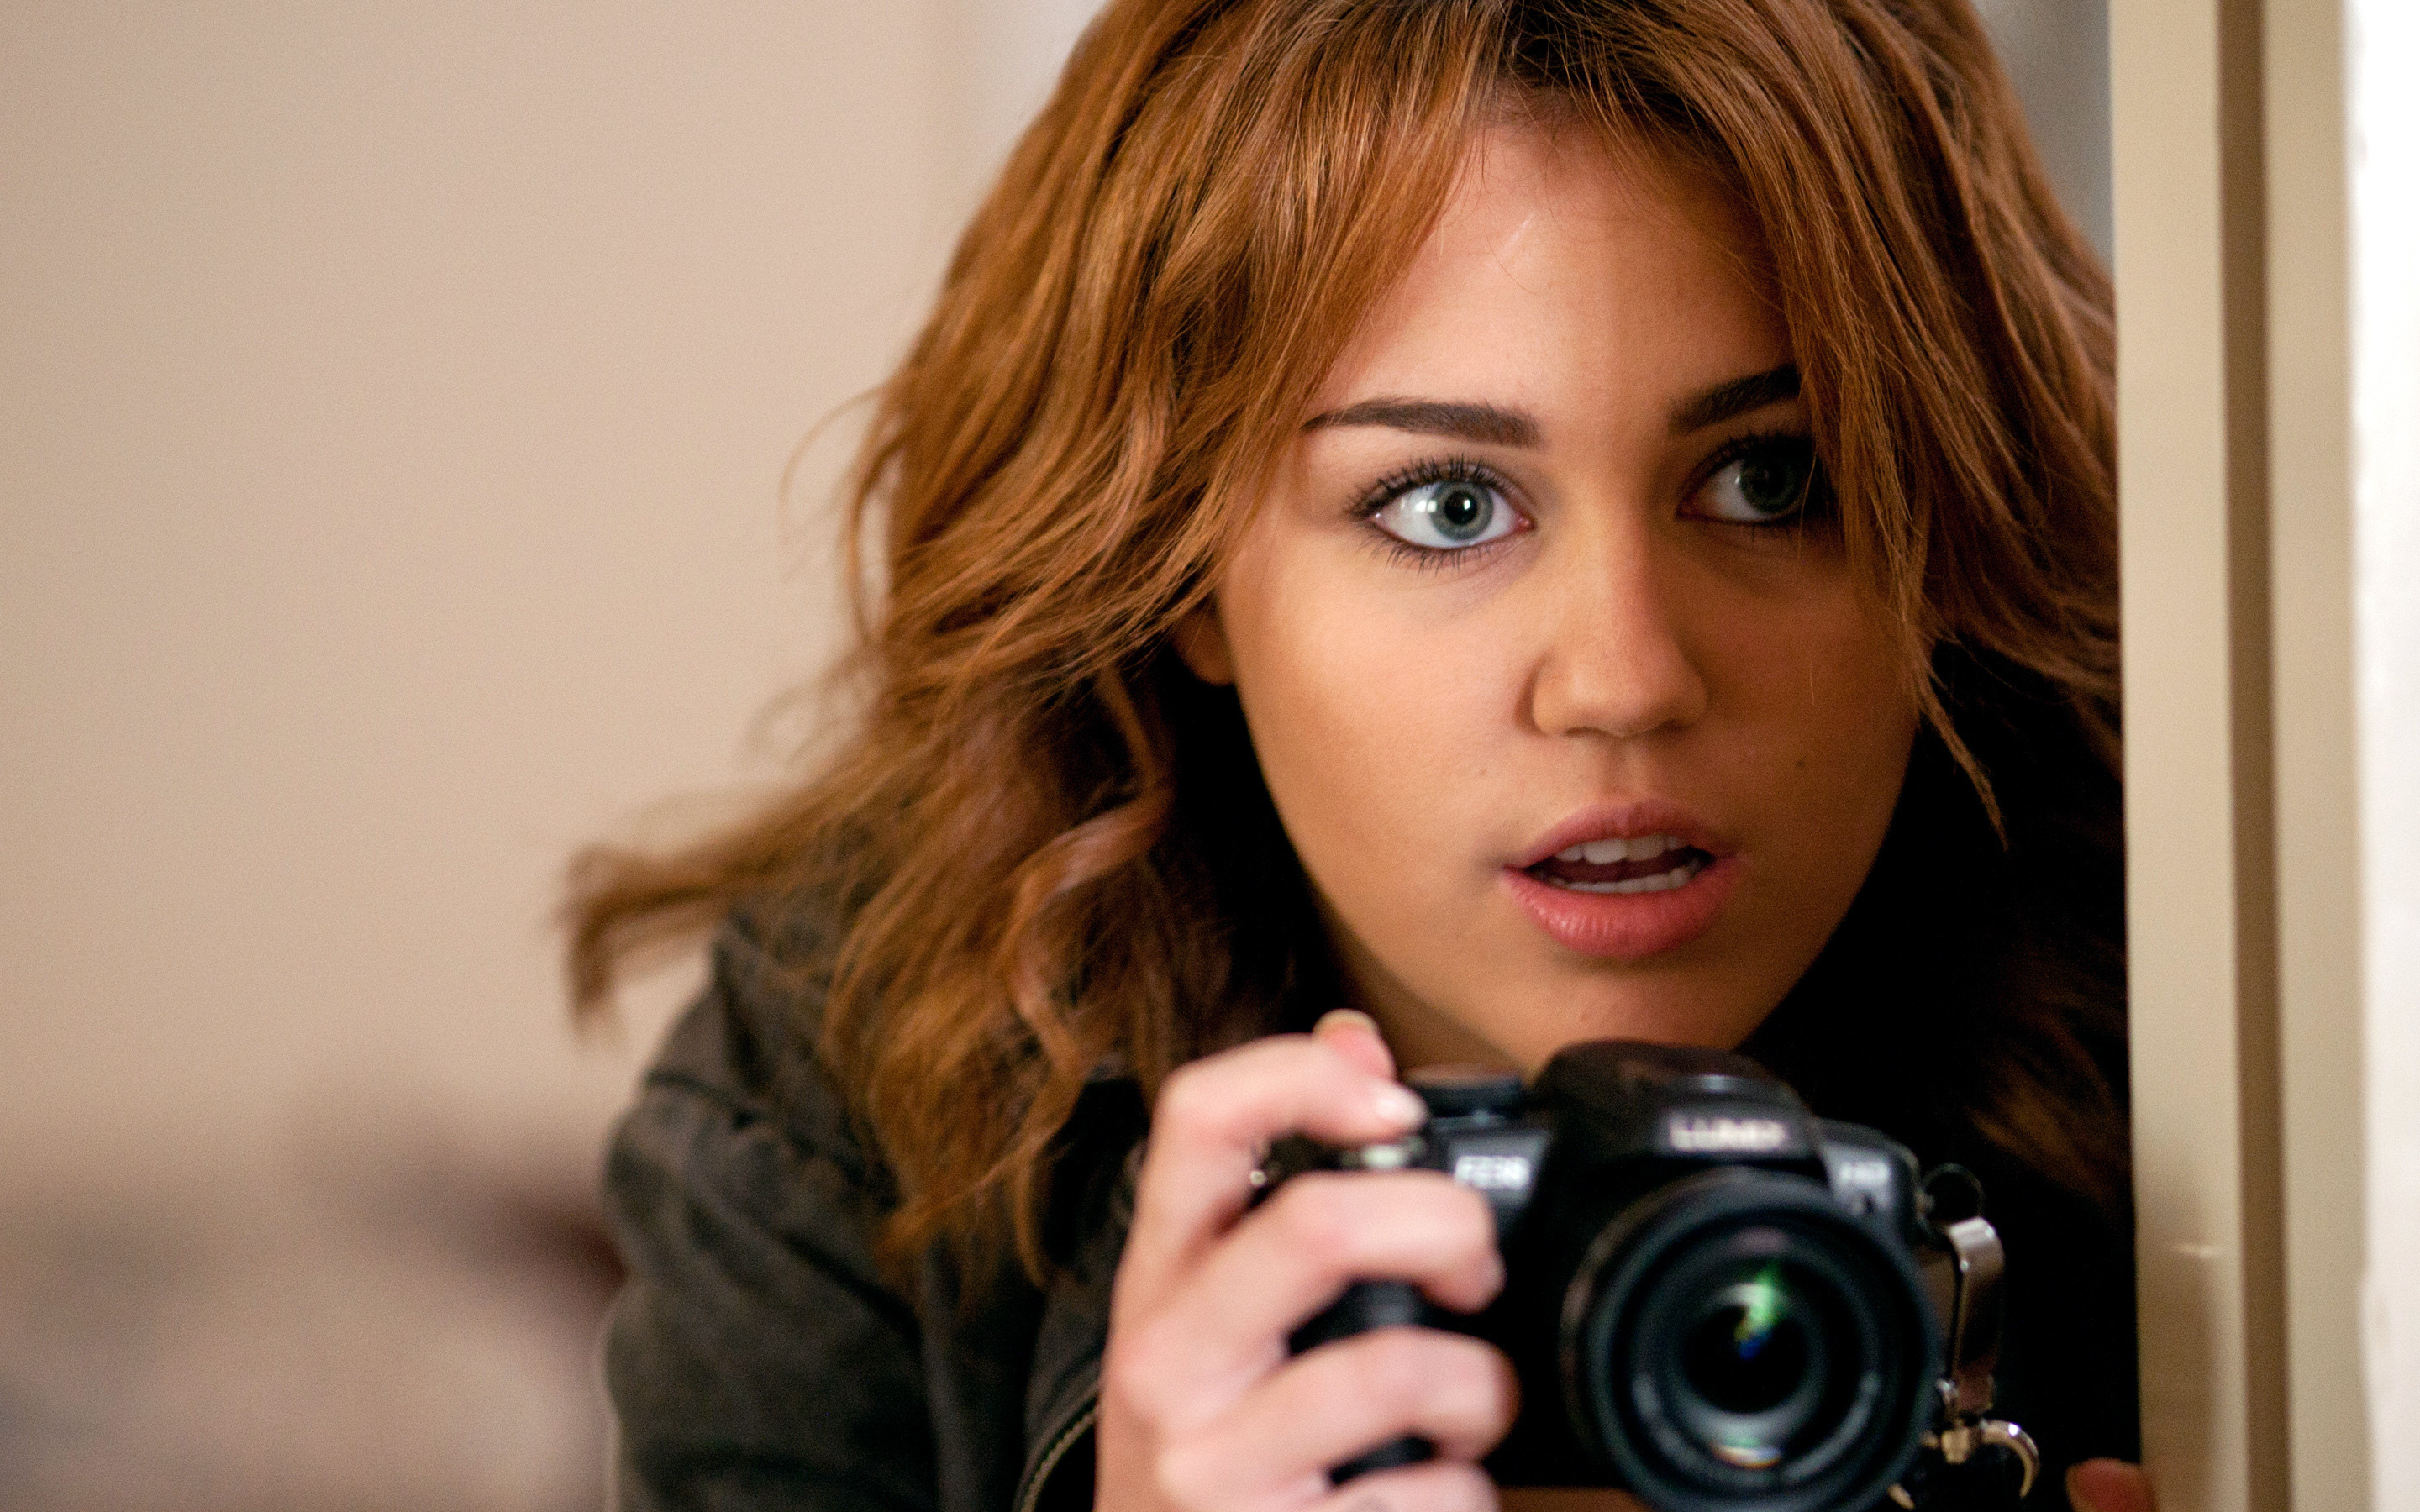 2880x1800 Miley Cyrus Wallpaper – Miley cyrus – bestscreenwallpaper.com – #23